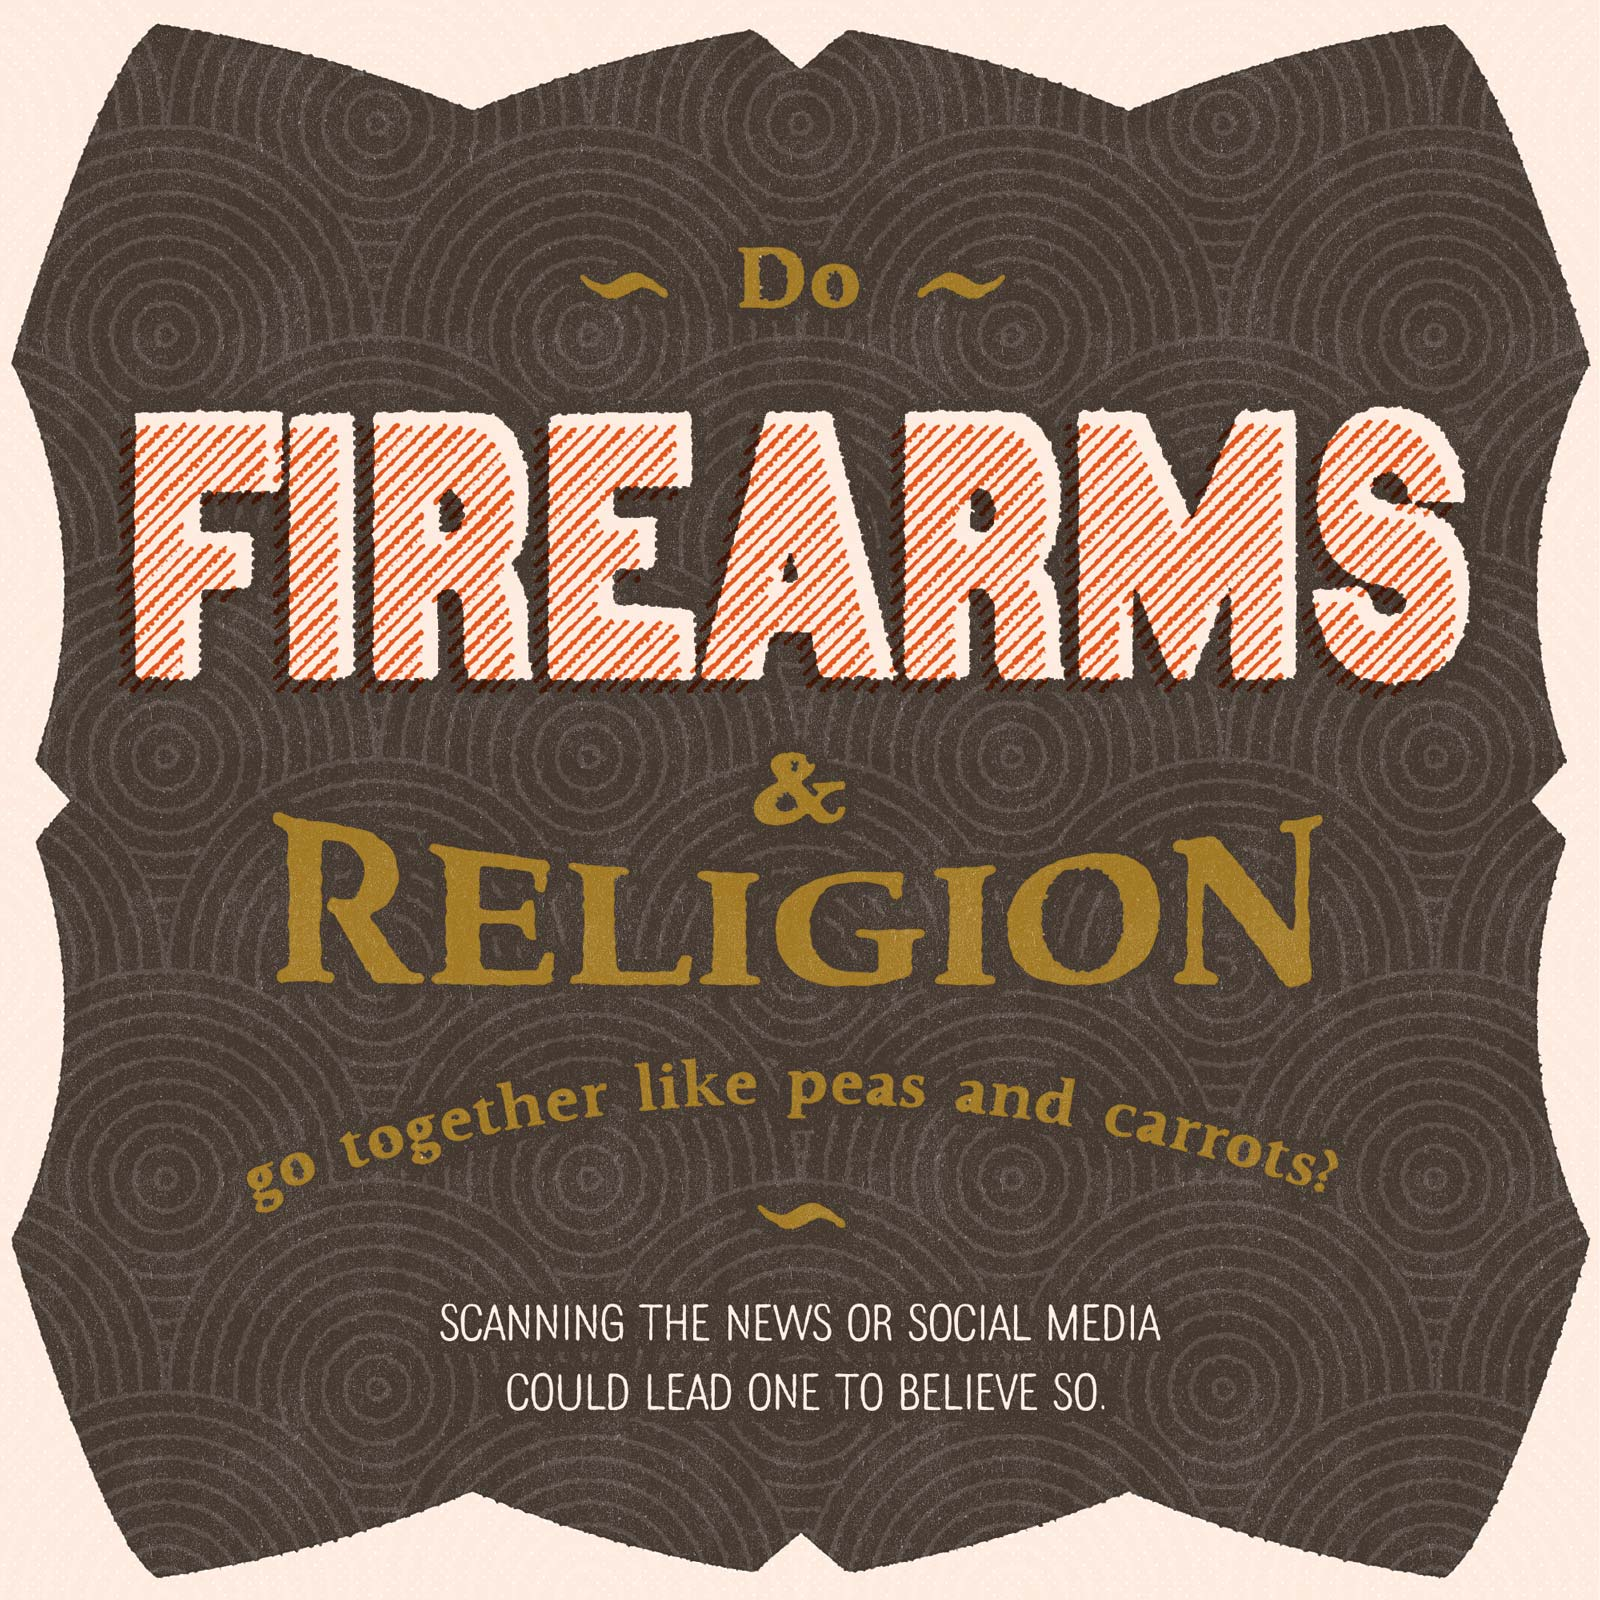 Do firearms and religion go together like peas and carrots? Scanning the news or social media could lead one to believe so.